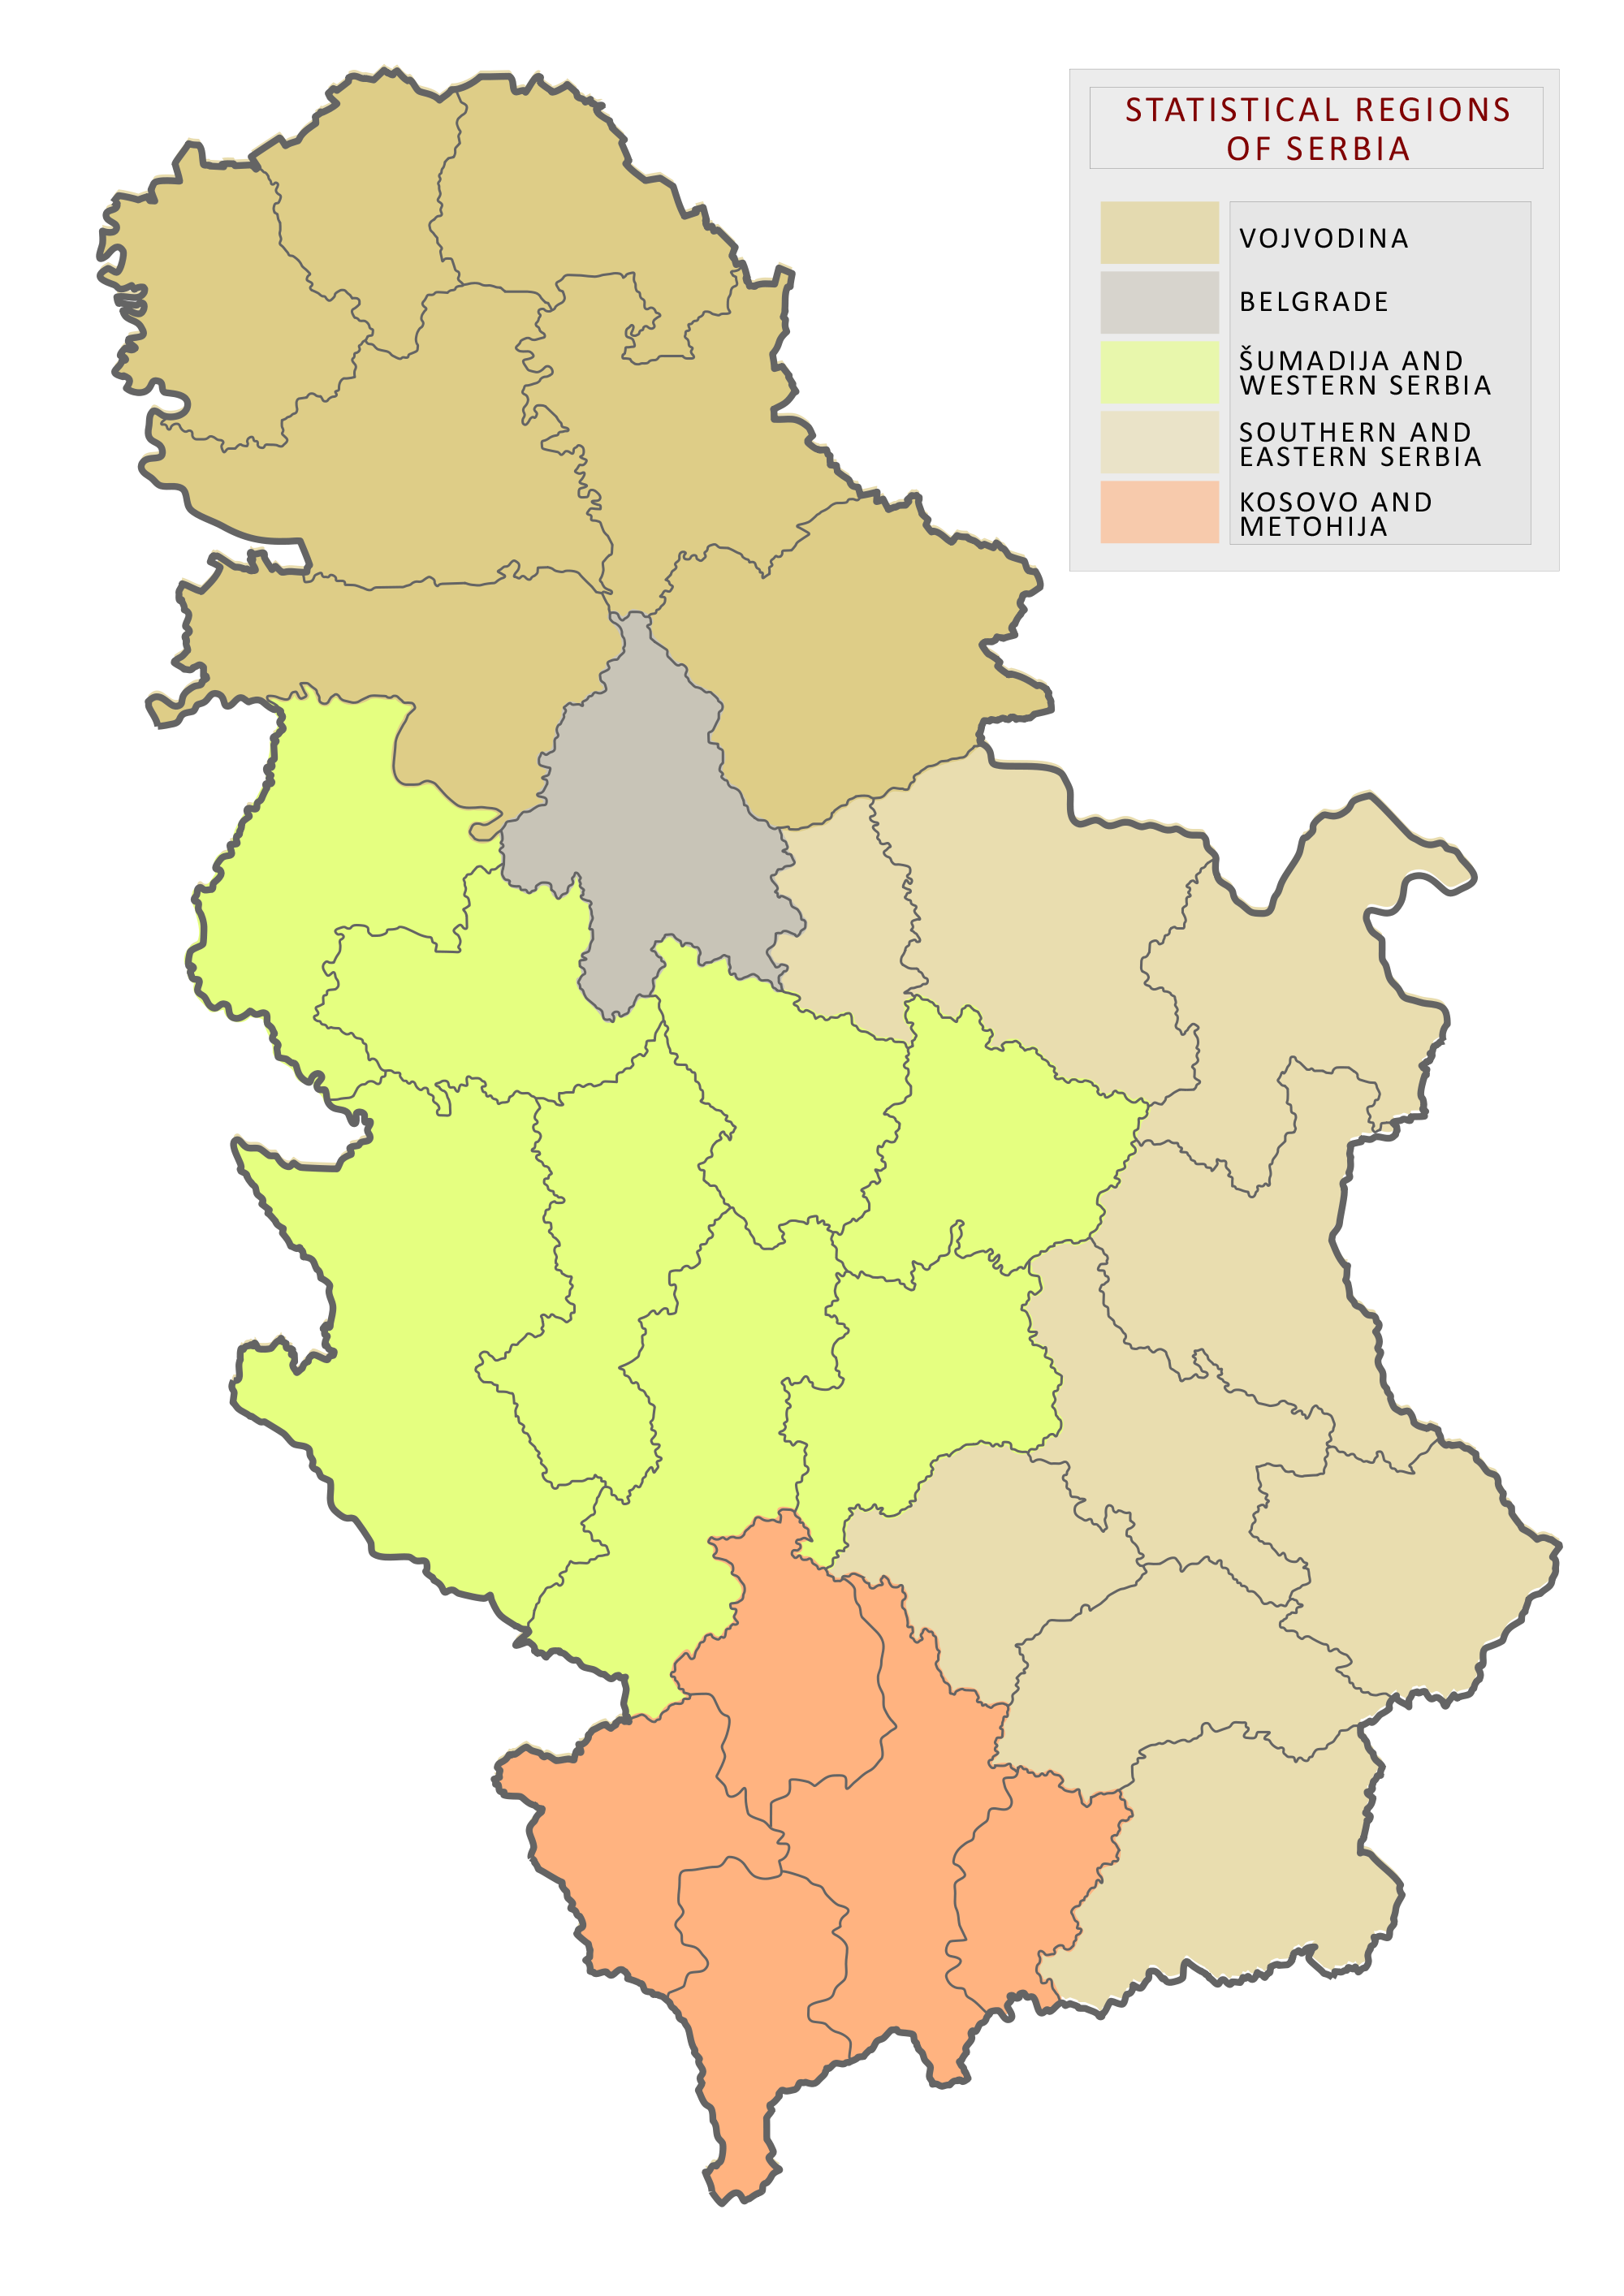 FileStatistical regions of Serbiapng Wikimedia Commons